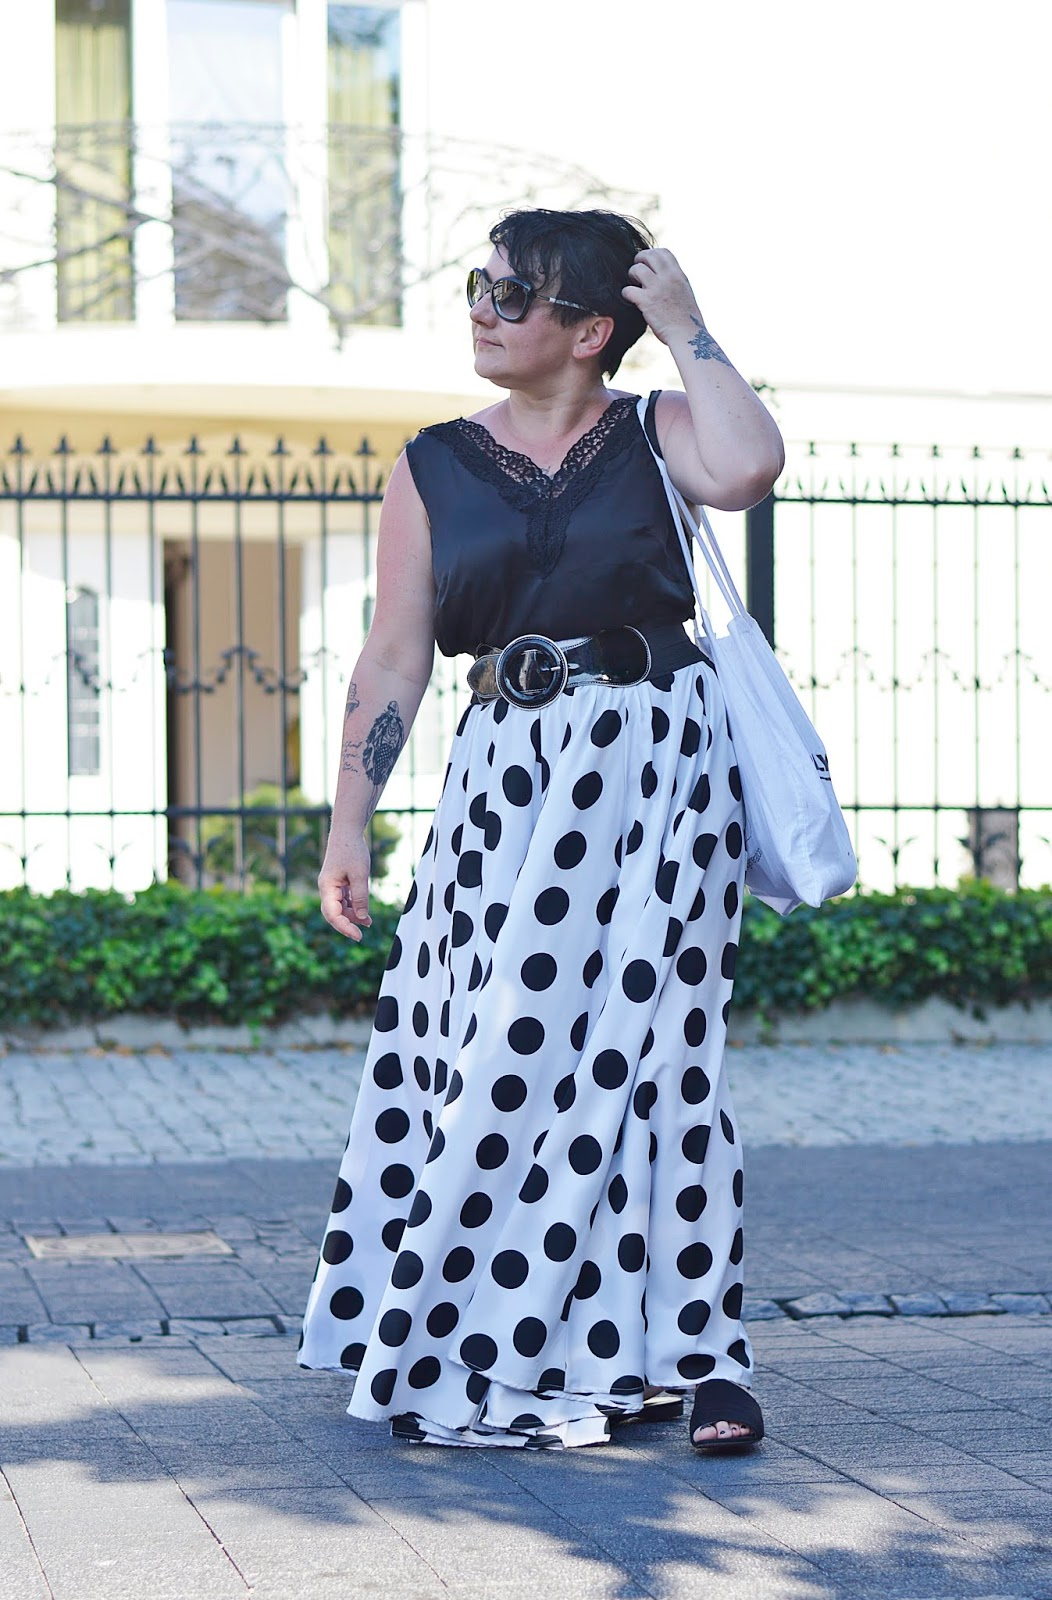 Black and white fashion, polka dots, Black and white summer.